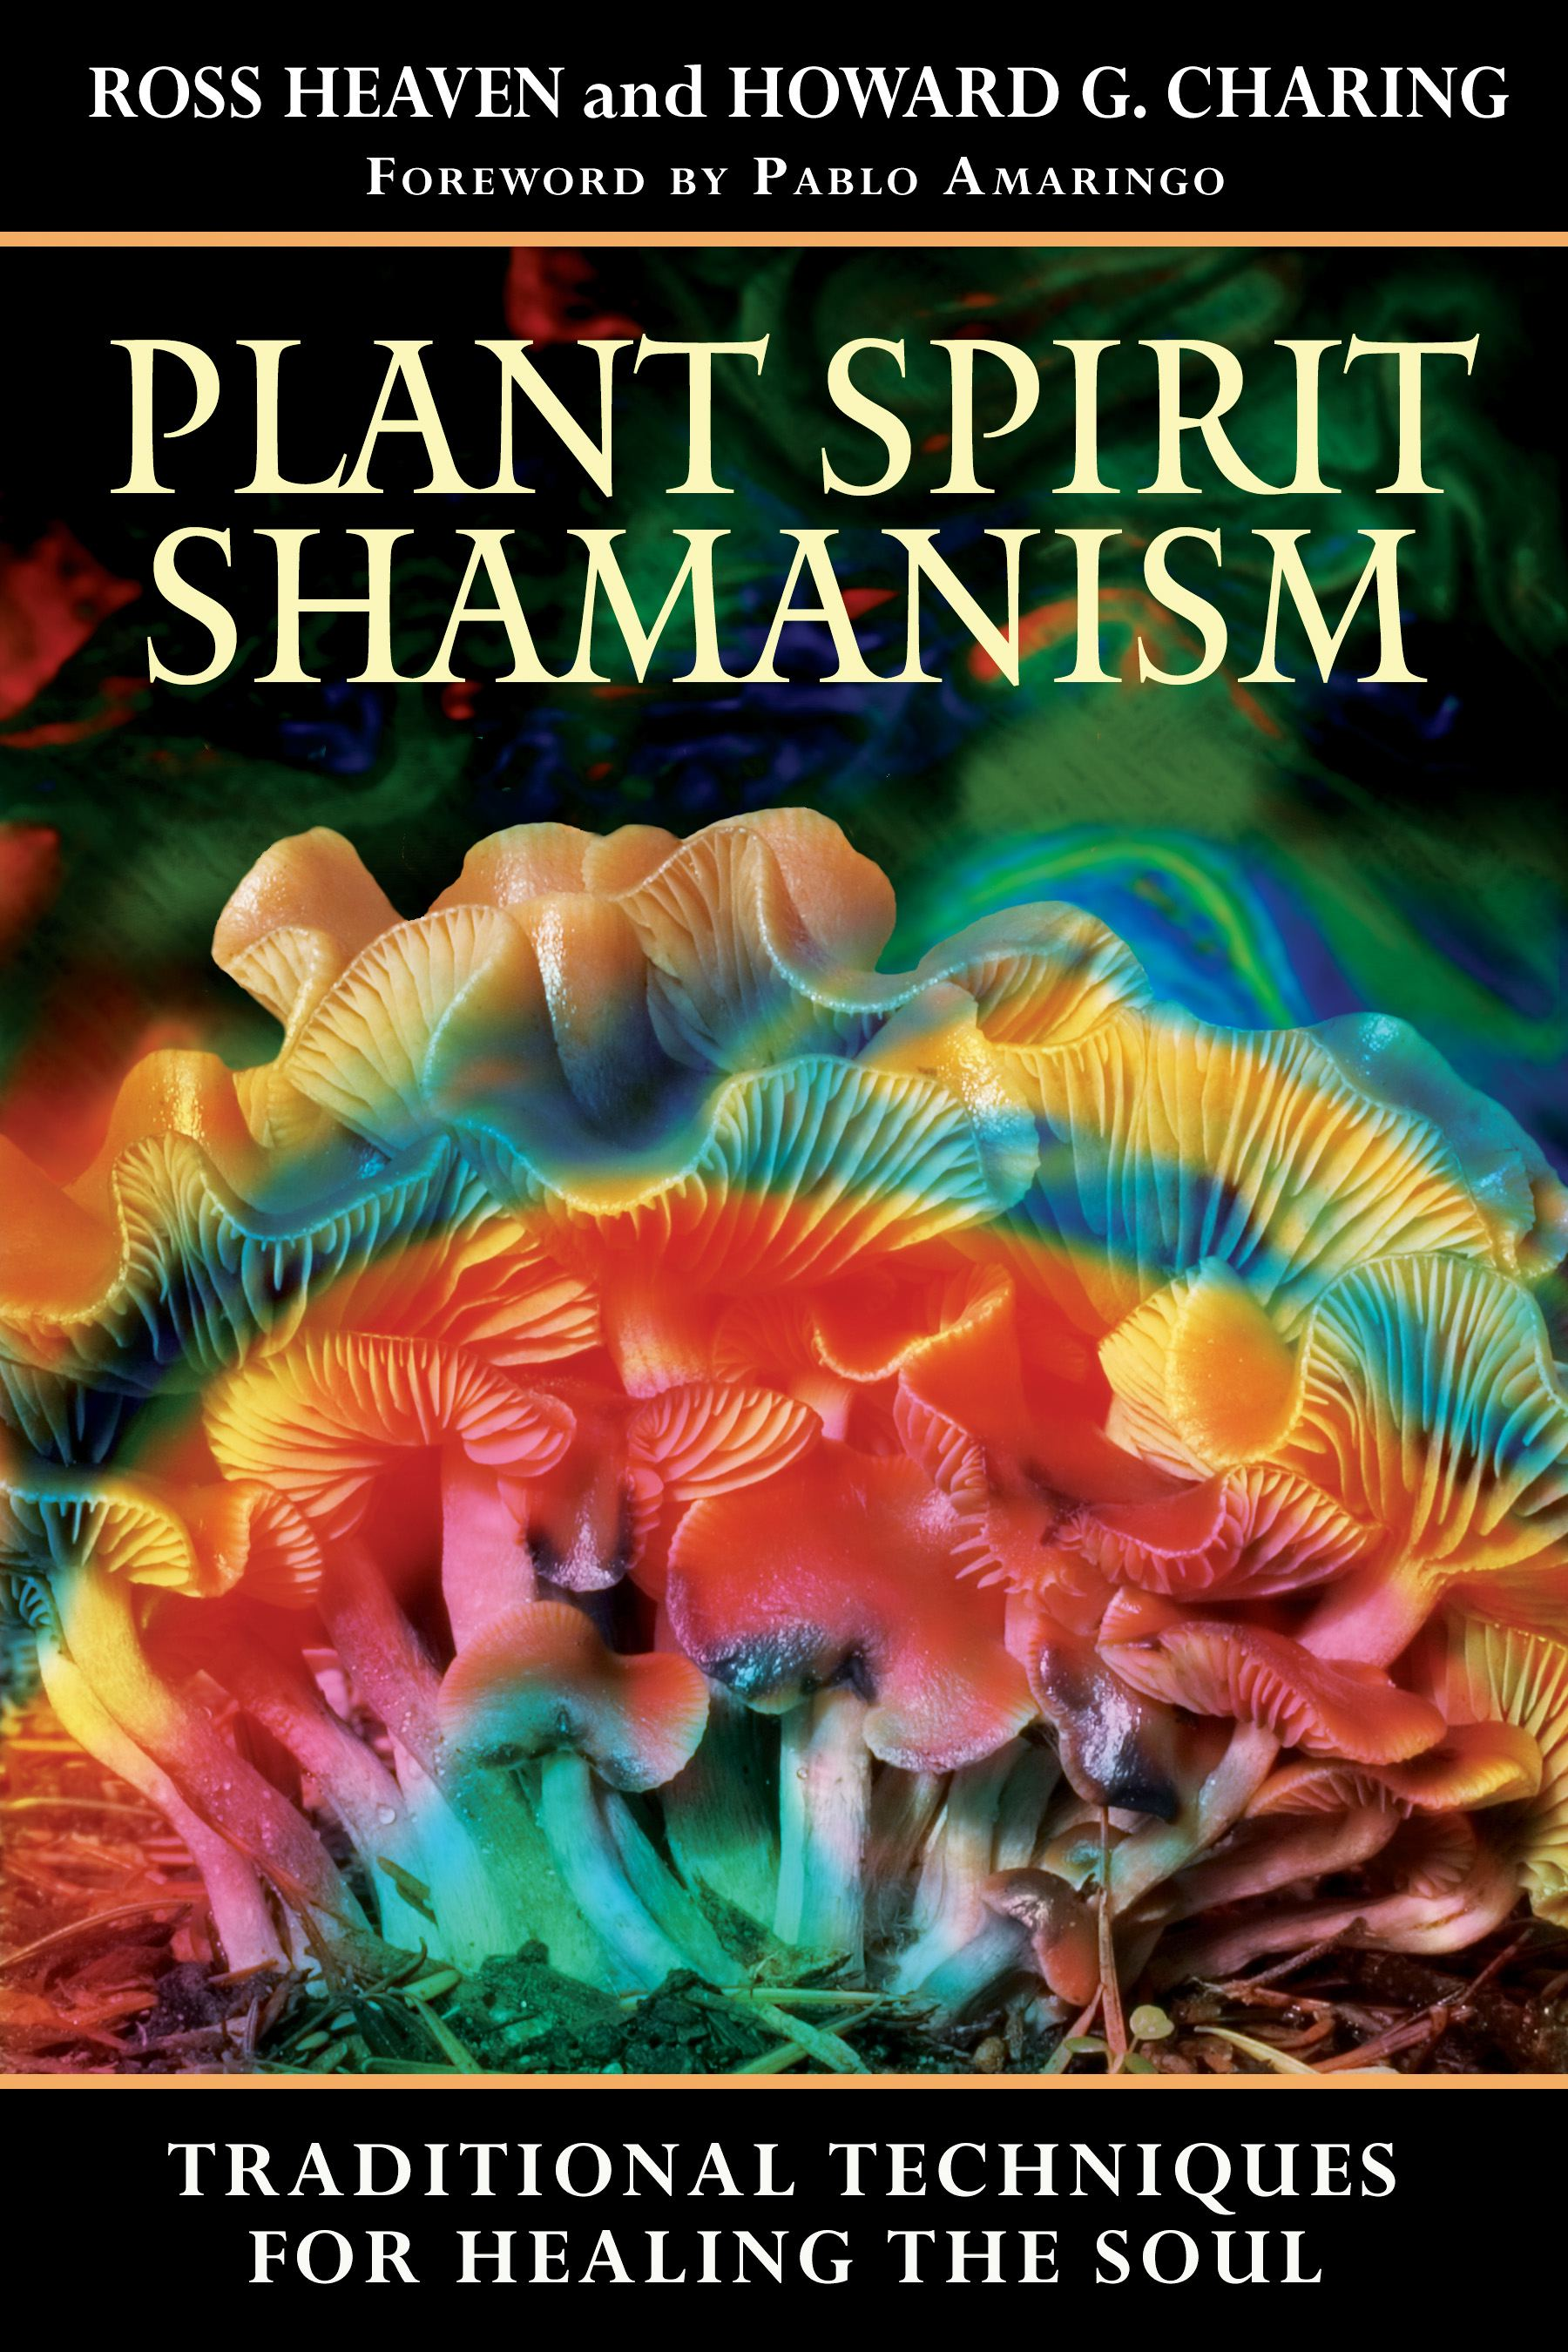 Plant spirit shamanism 9781594771187 hr